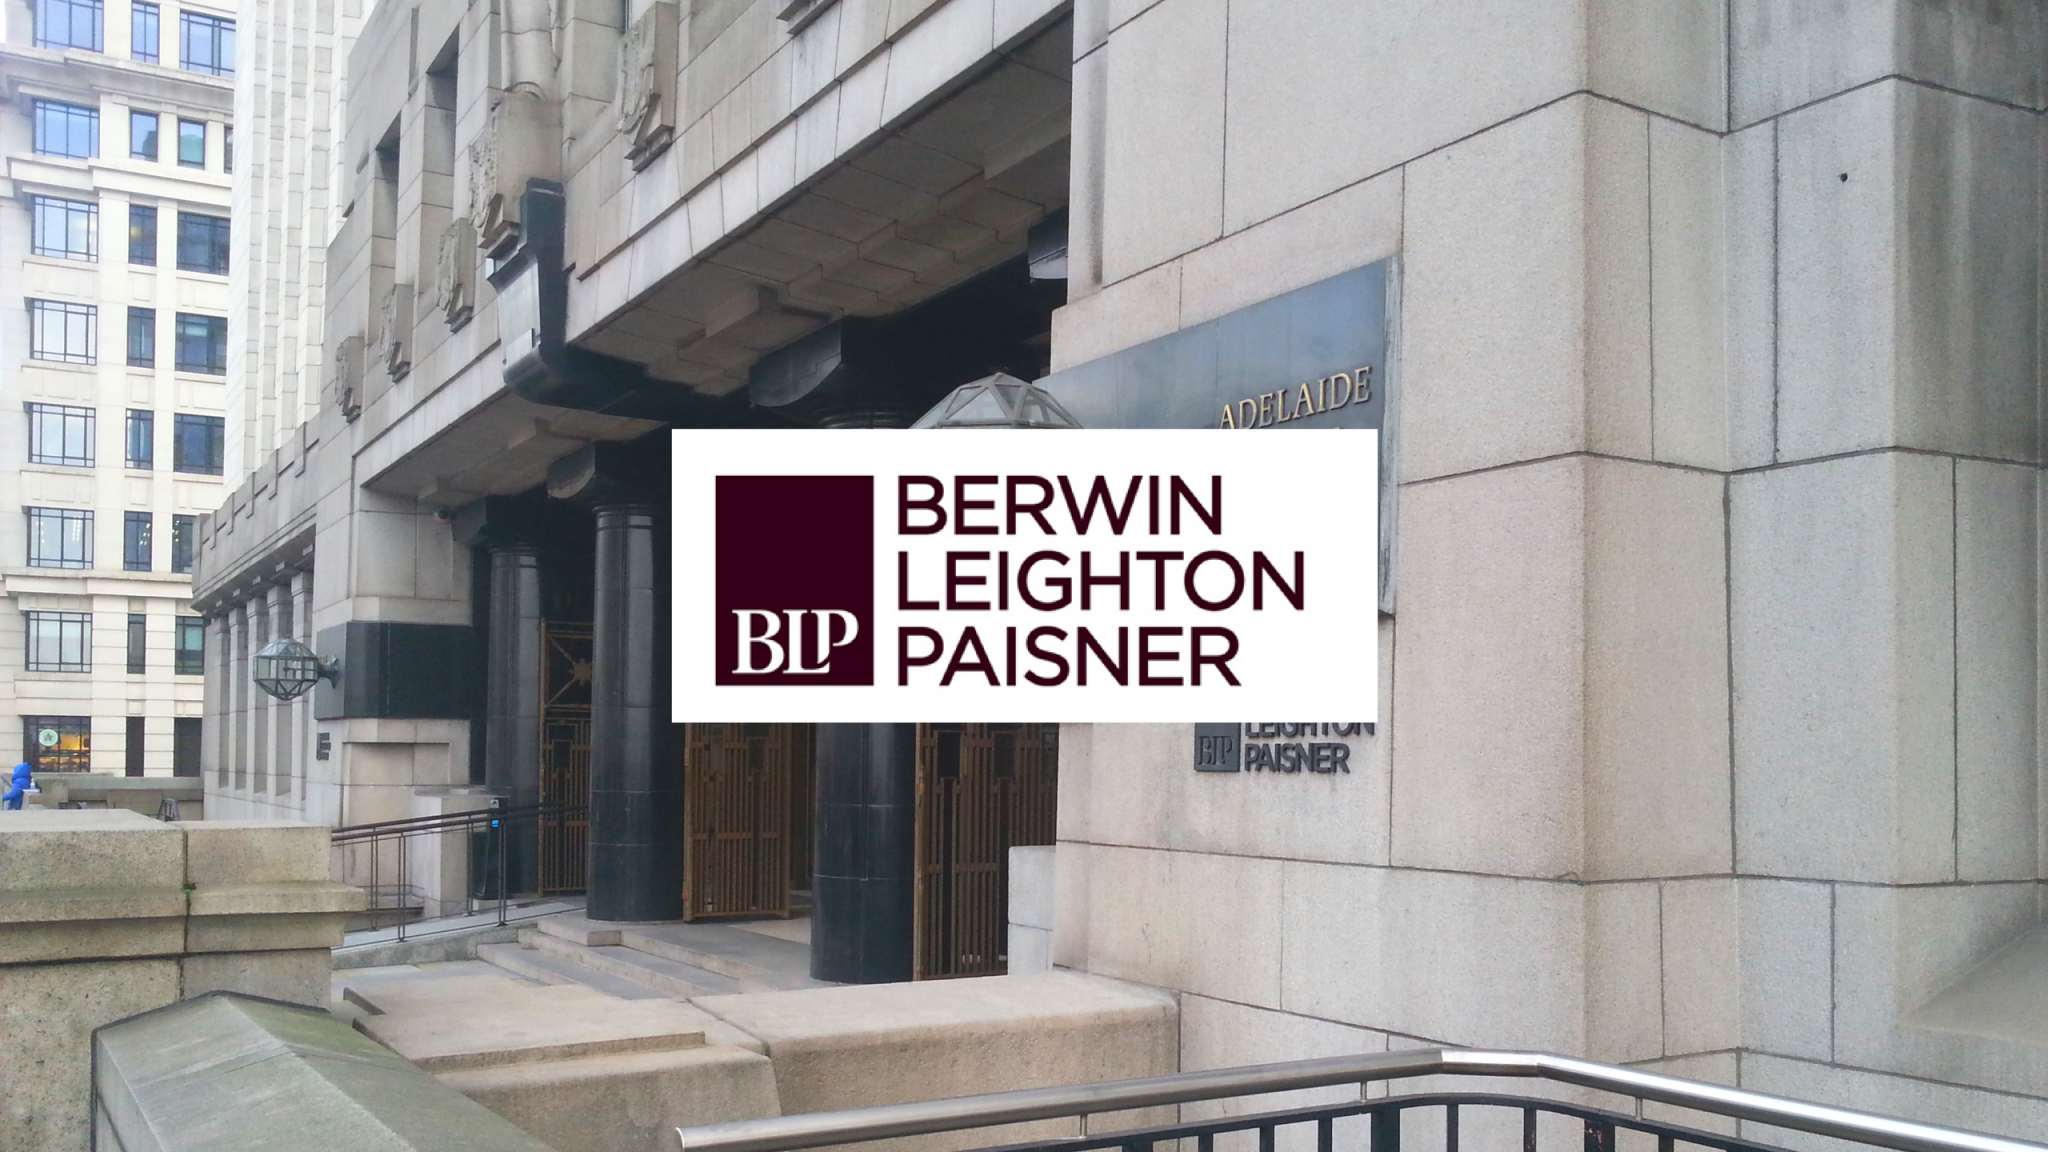 Berwin Leighton Paisner Best Law Firms in the World UpSlide